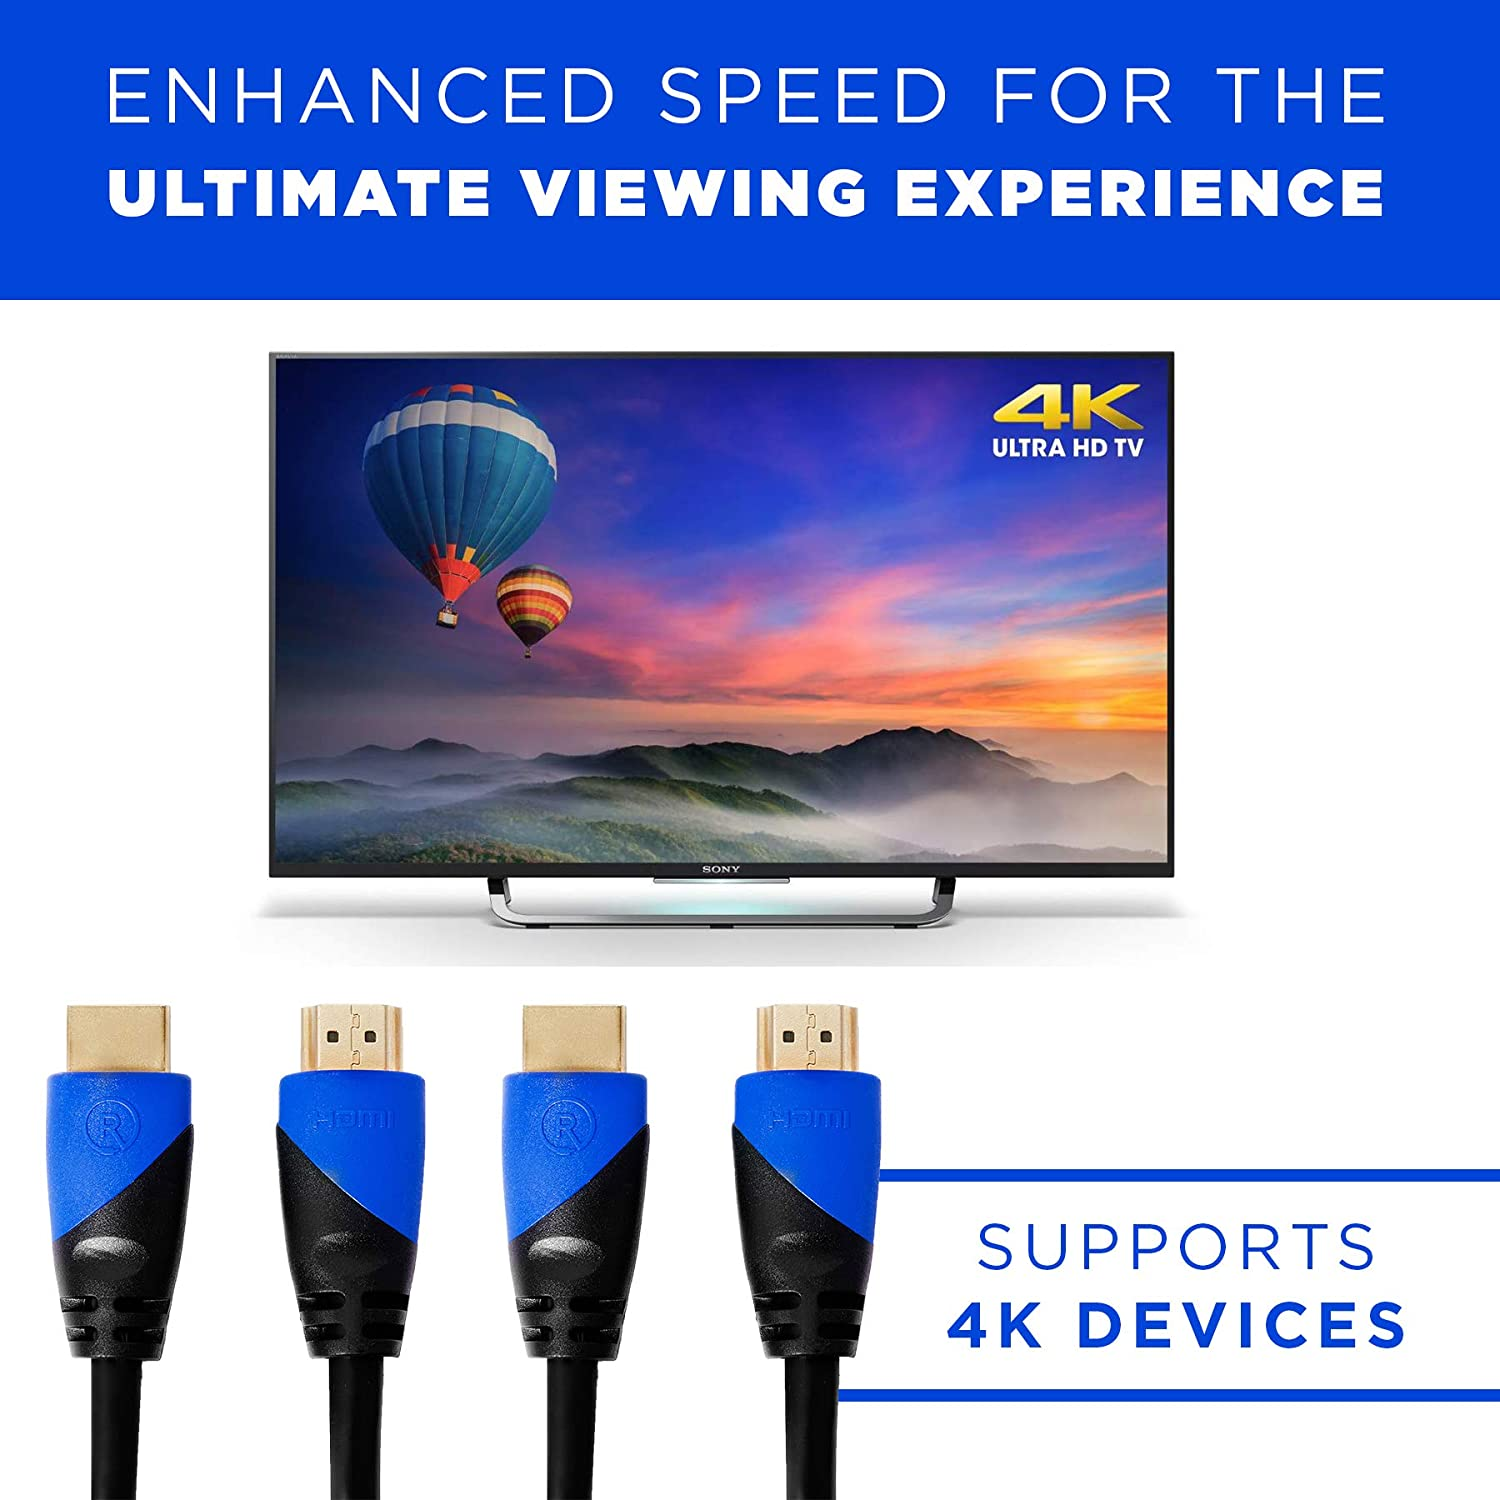 2K Ready 4K RELM High-Speed HDMI Cable Ethernet Enabled for 18 GBP Supports Master Audio Return 3 Feet Ultra High Definition HDMI Cord is 3D